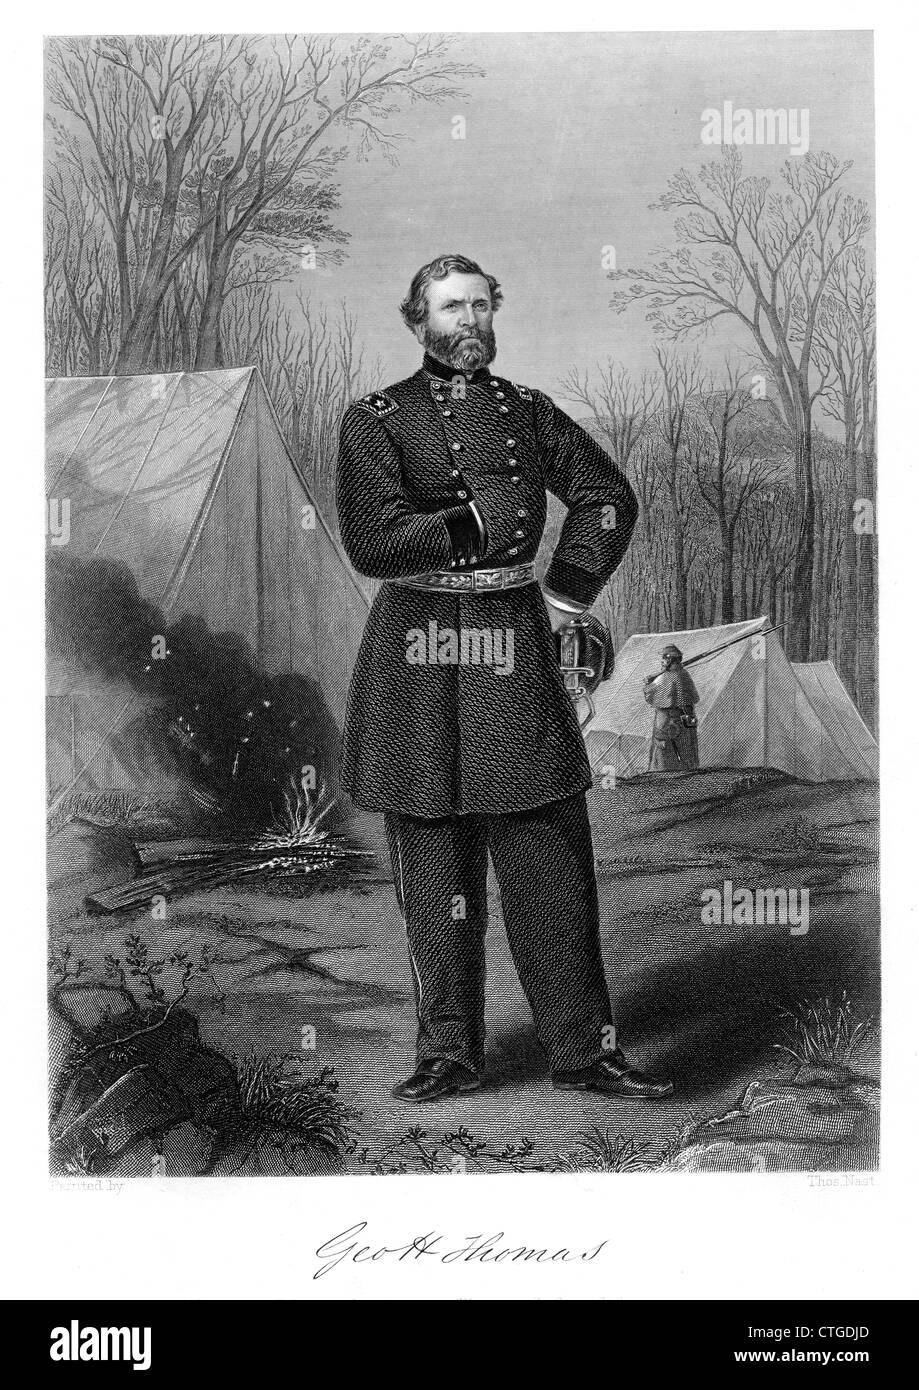 1800s 1860s PORTRAIT GEORGE THOMAS UNION GENERAL DURING AMERICAN CIVIL WAR NOTABLE VICTORY IN BATTLE OF NASHVILLE - Stock Image